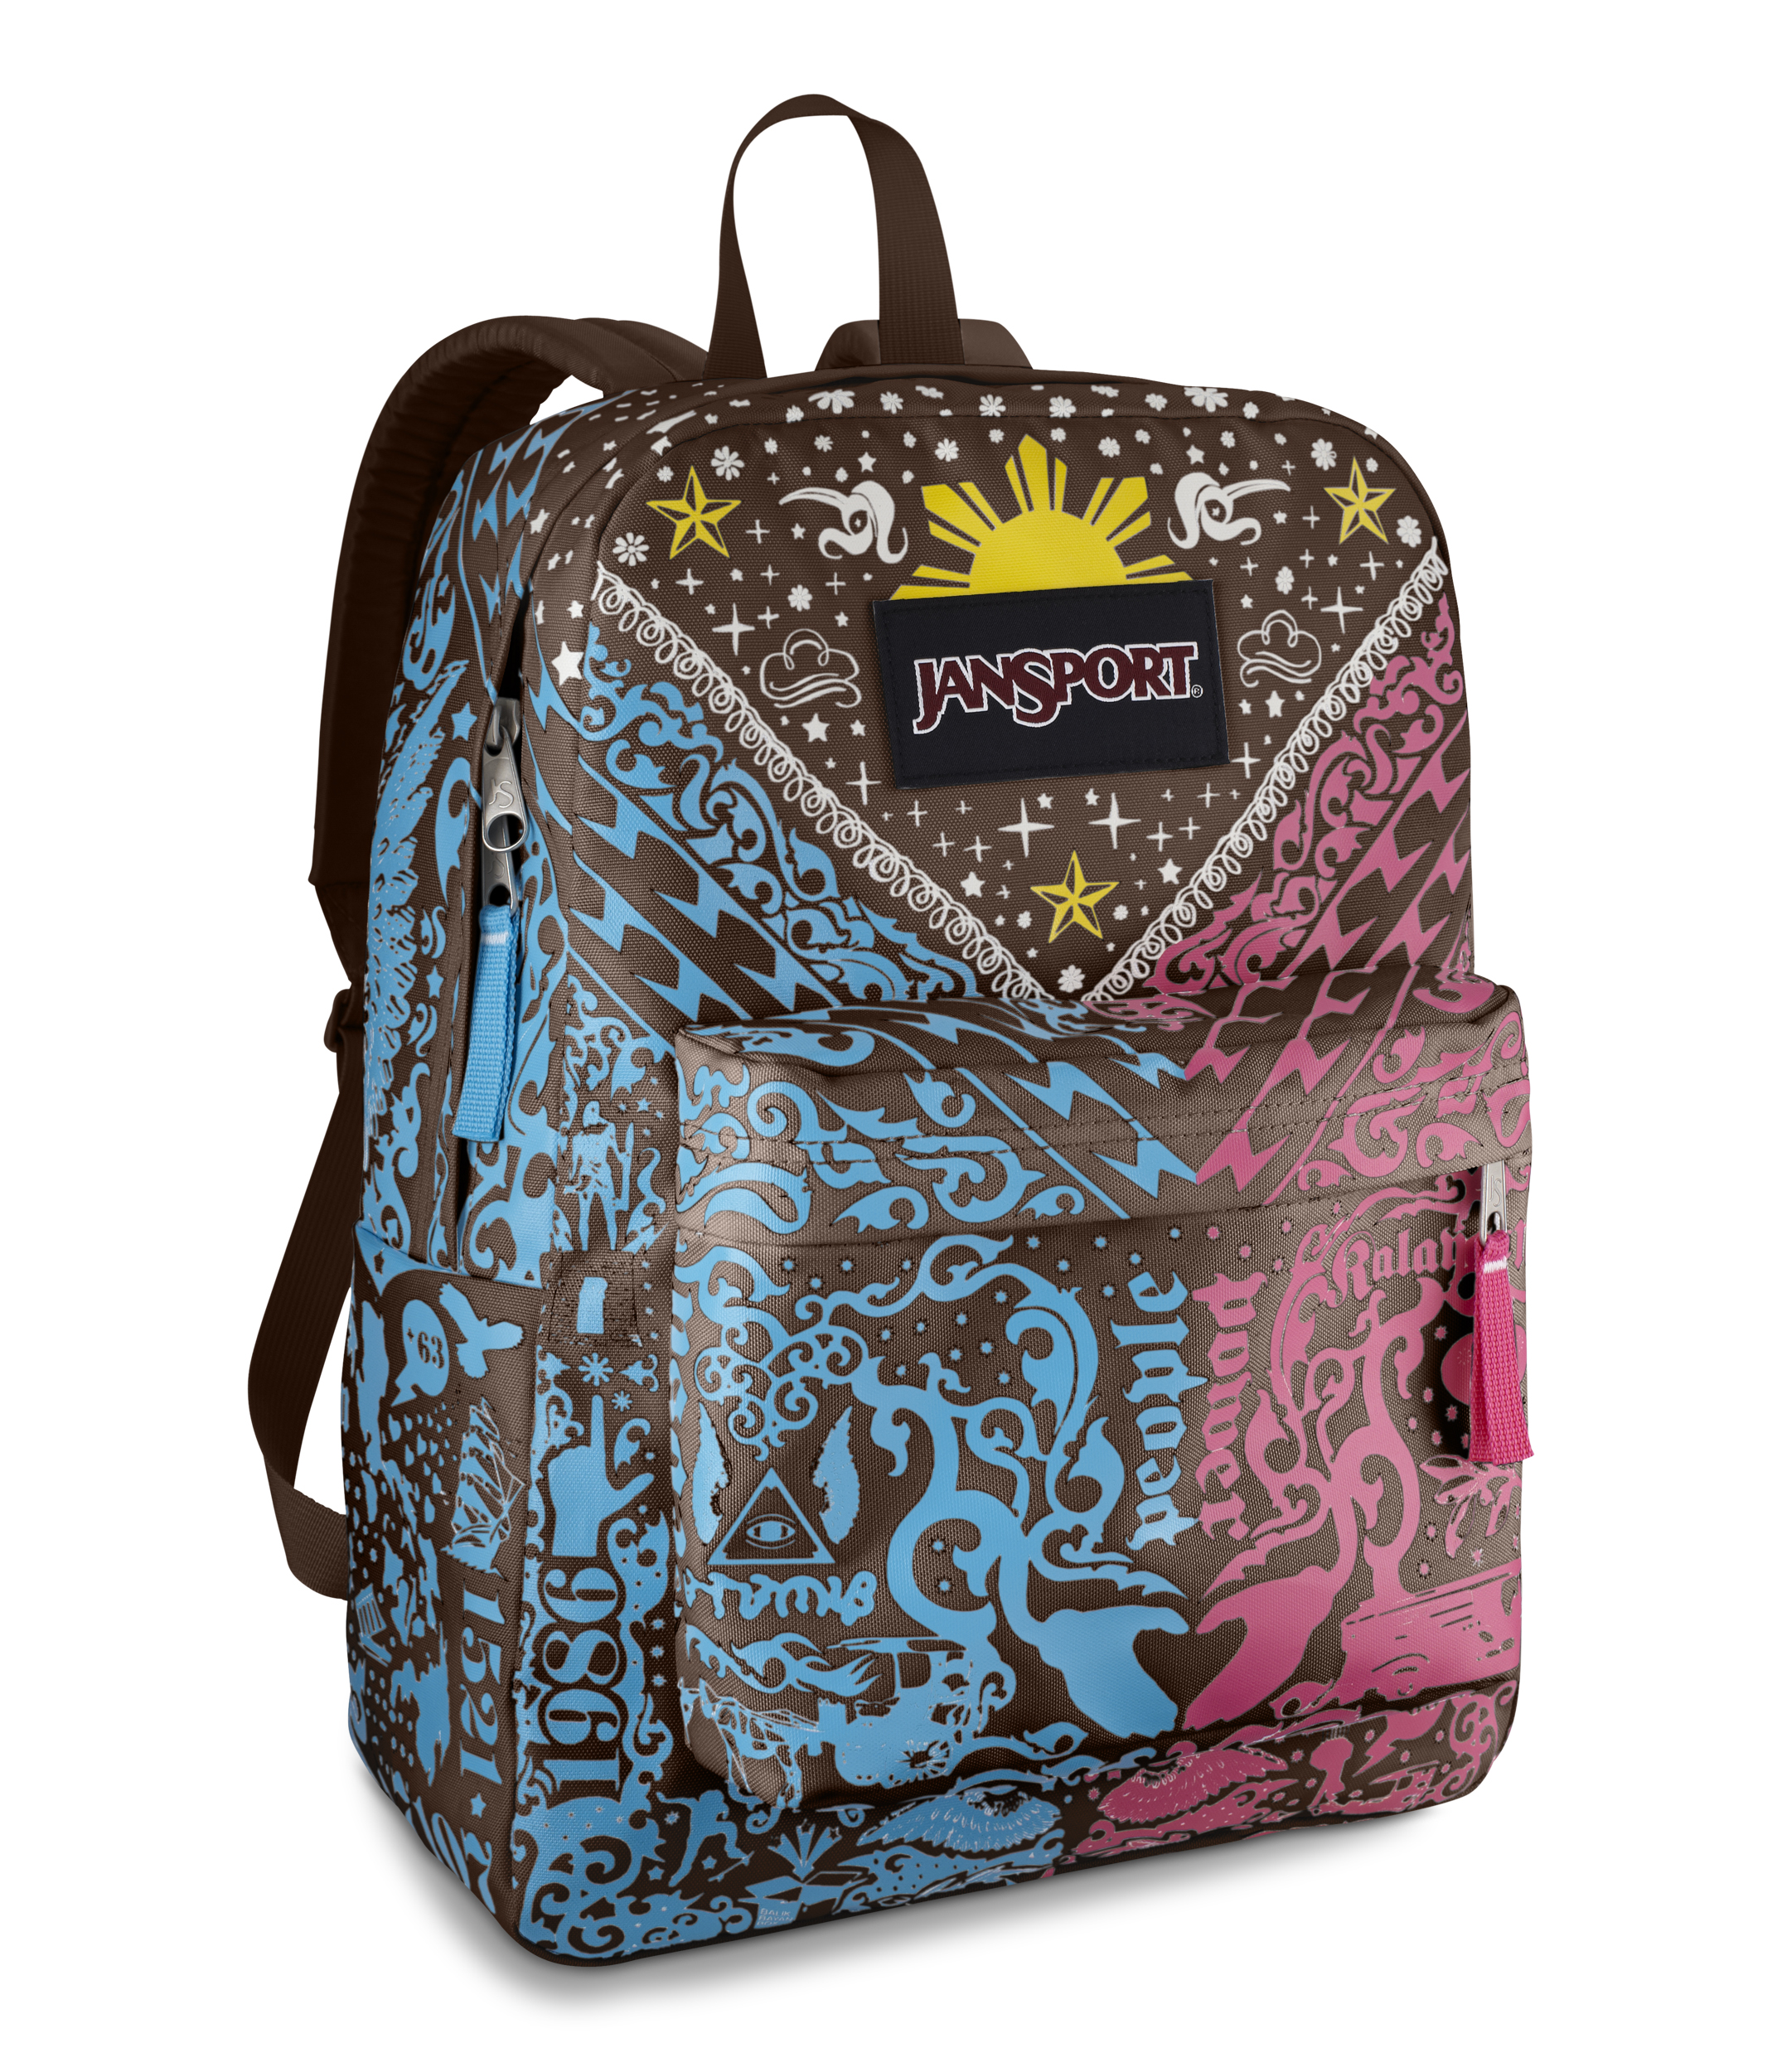 Jansport Backpacks Designs HX8XyPIr